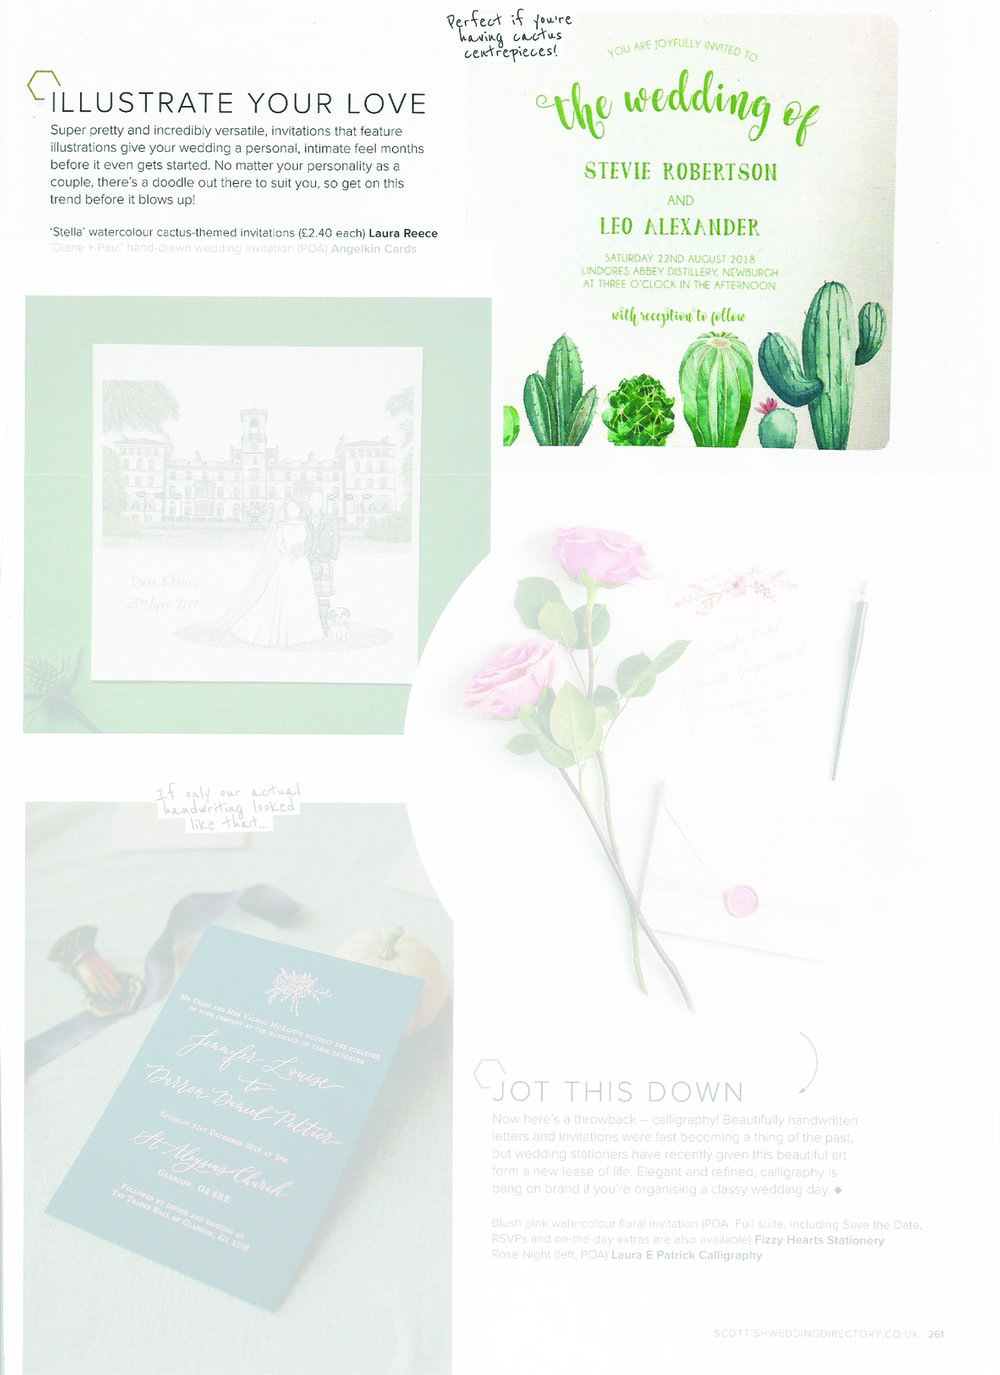 Scottish Wedding Directory - Cactus themed wedding stationery is so popular right now! Our latest design 'Stella' was featured in the Scottish Wedding Directory magazine.Can be found in Winter 18' issue, page 261.